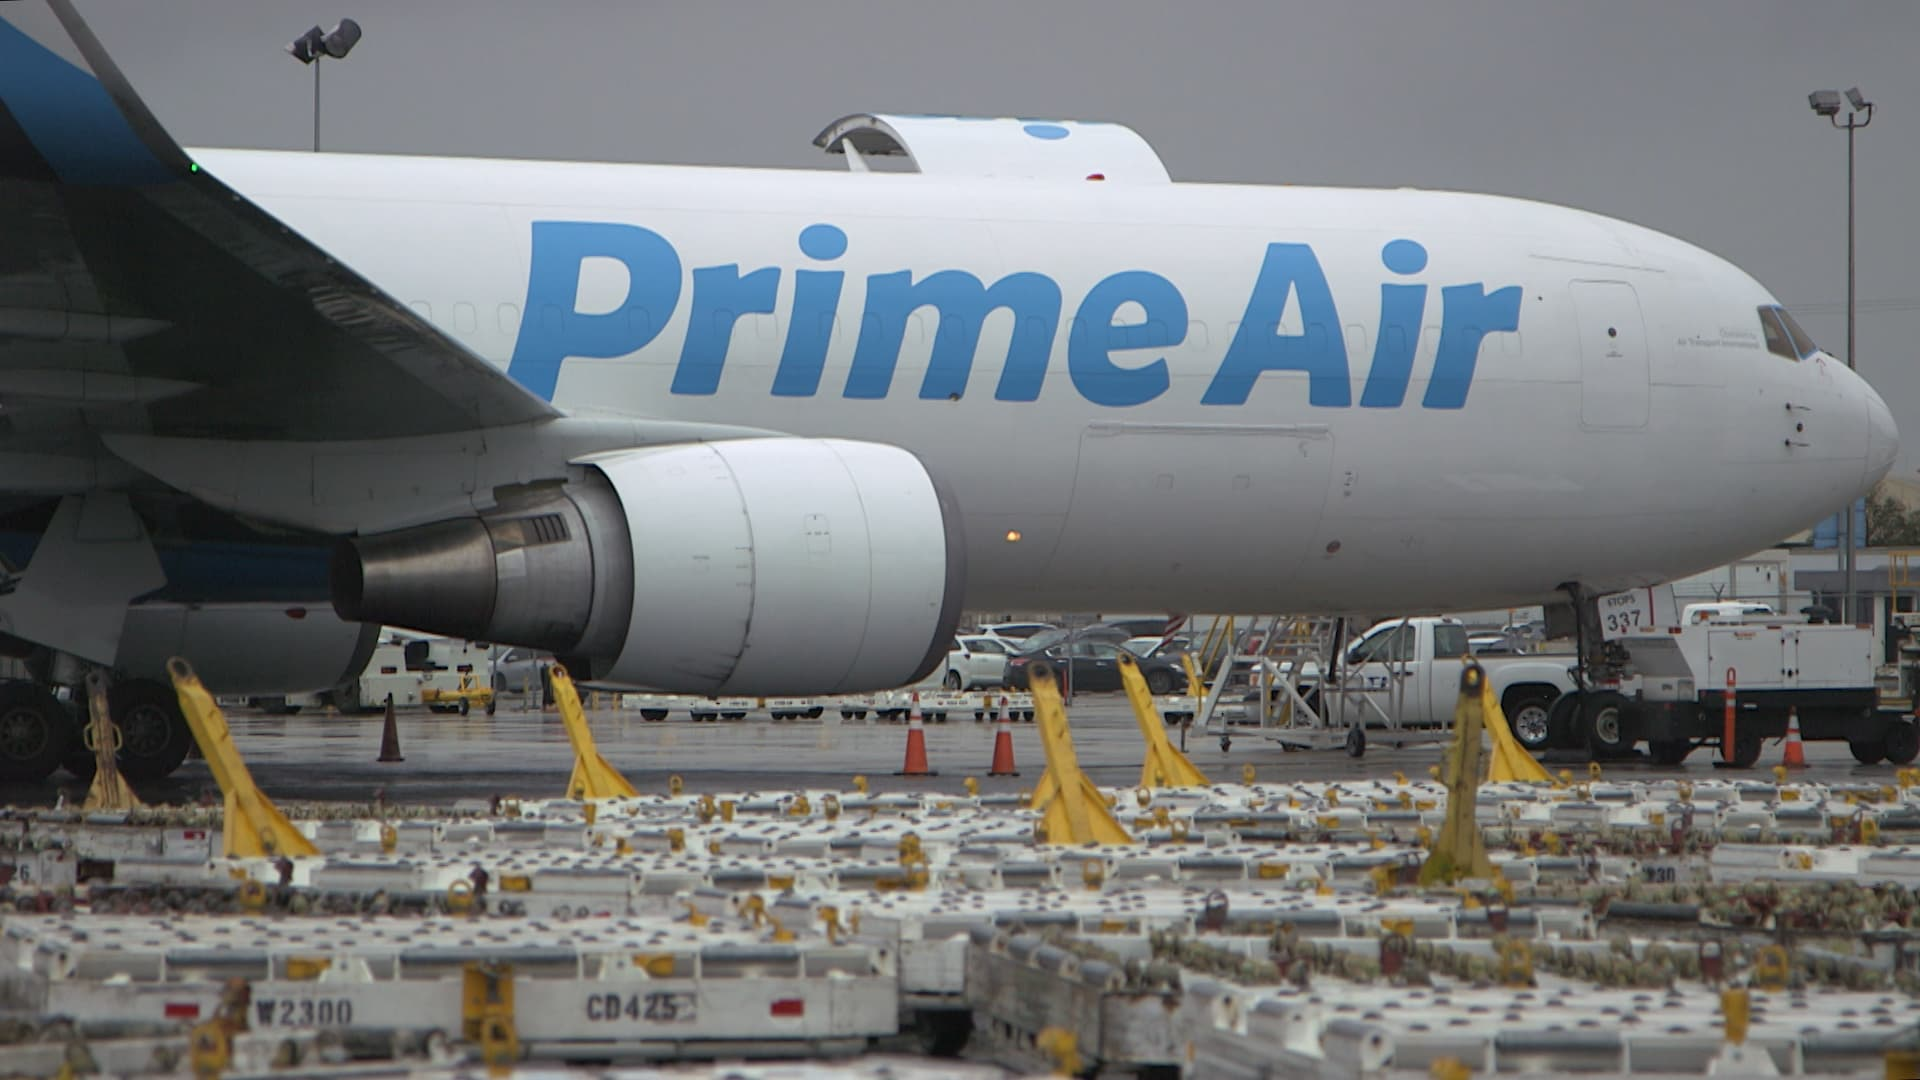 Amazon Air contractors claim safety risks amid coronavirus outbreaks 98